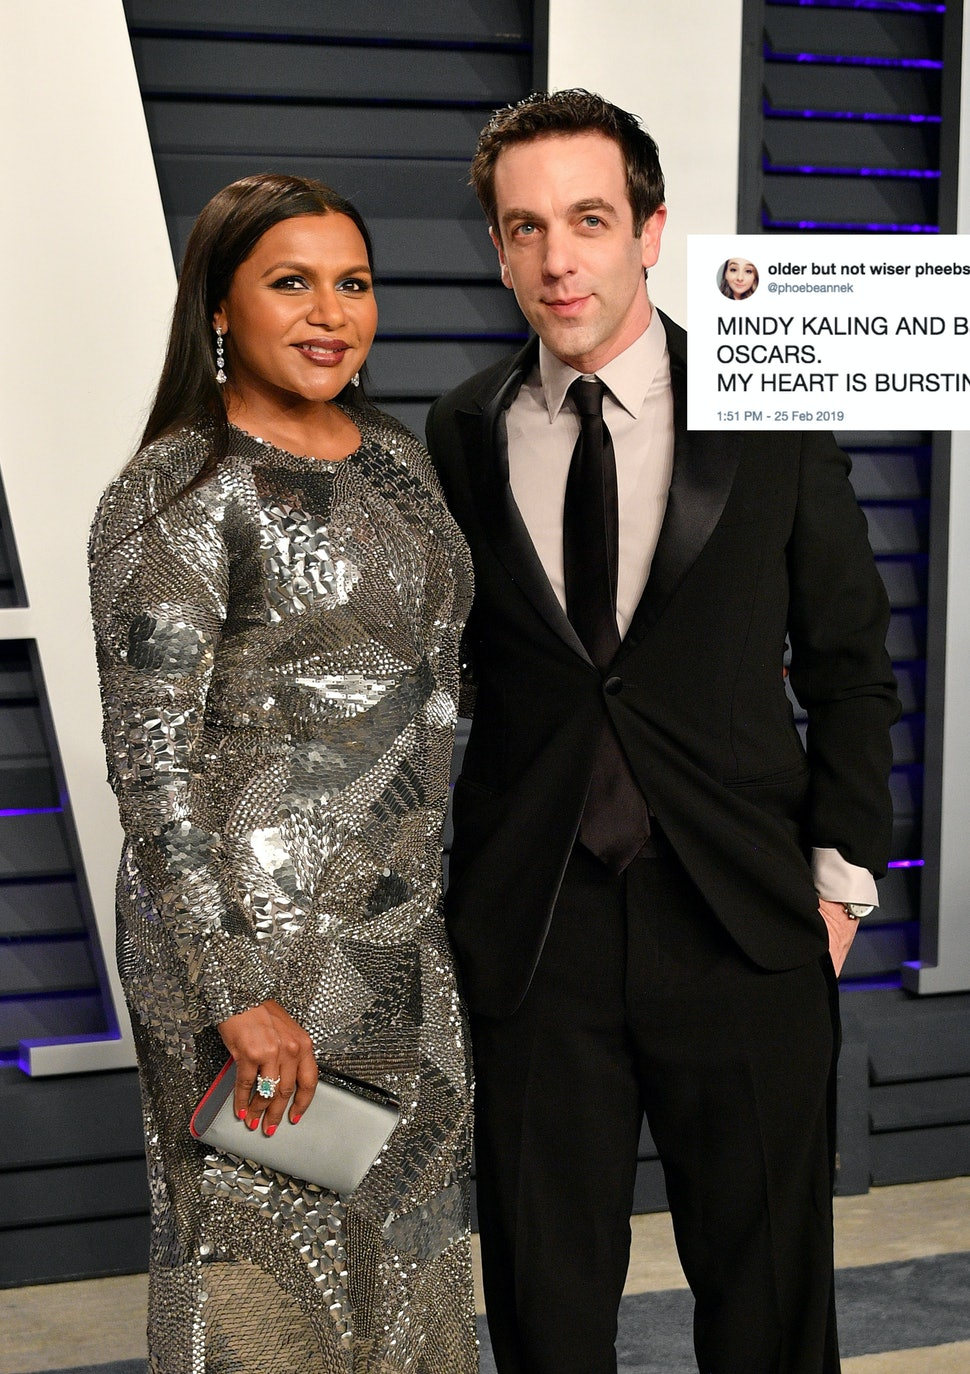 Mindy Kaling Took B J Novak To An Oscar Party Fans Of The Office Were So Into The Reunion Video